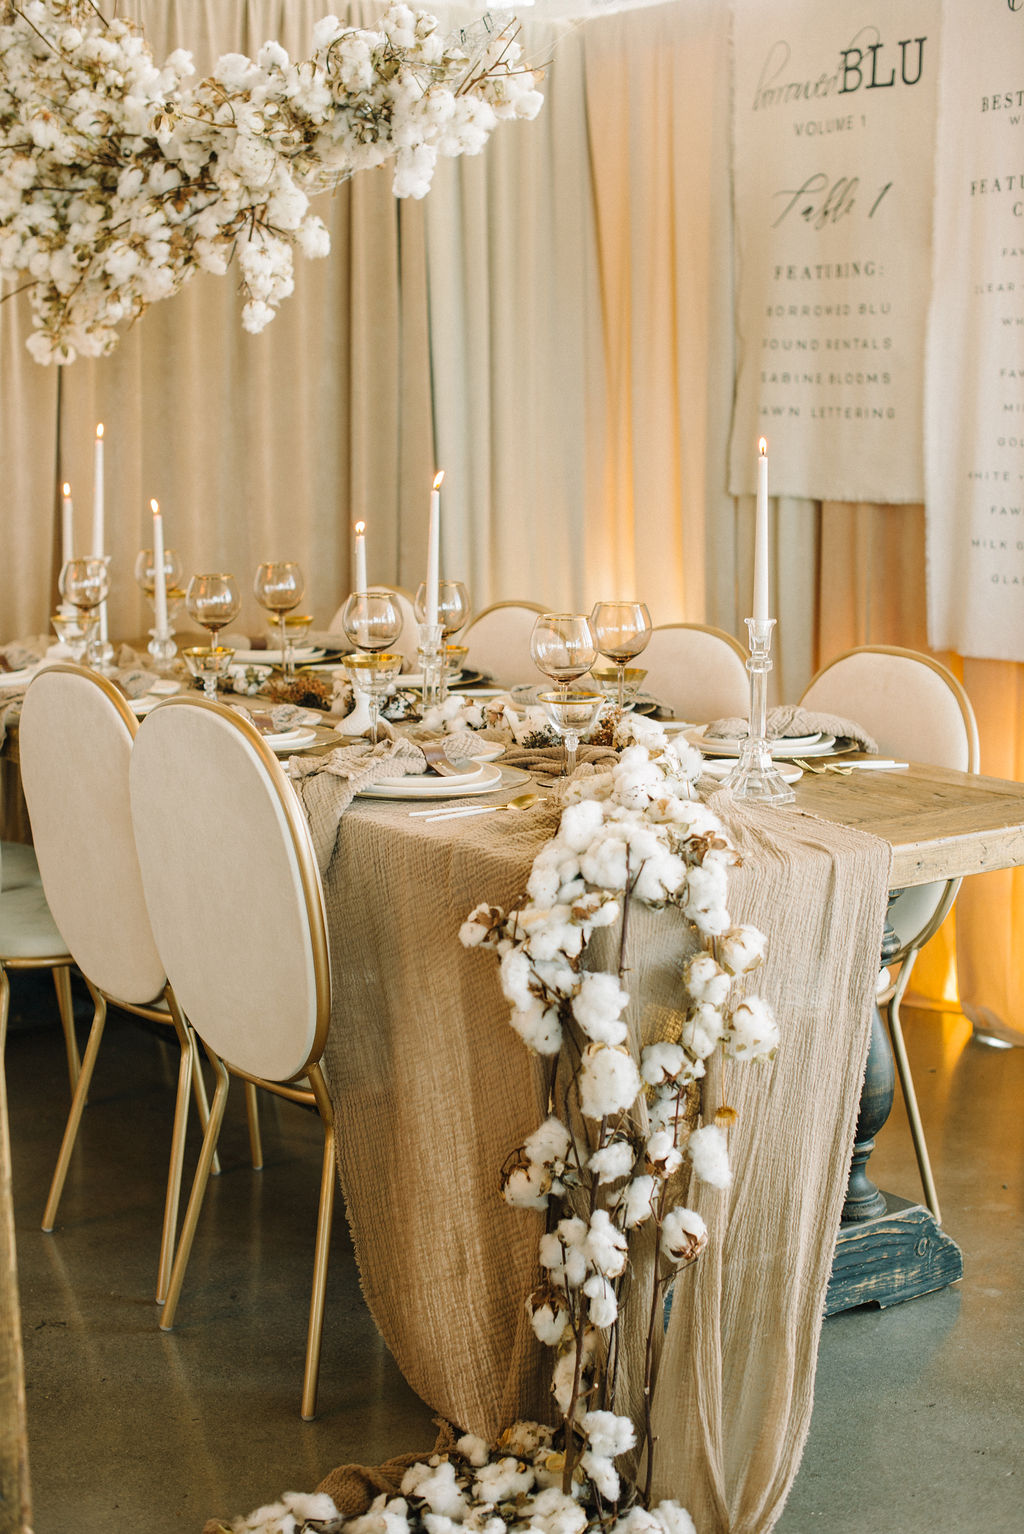 Hanging installation and tablescape by Crowned Events at borrowed BLU event using cotton on a stick from Mayesh Wholesale.